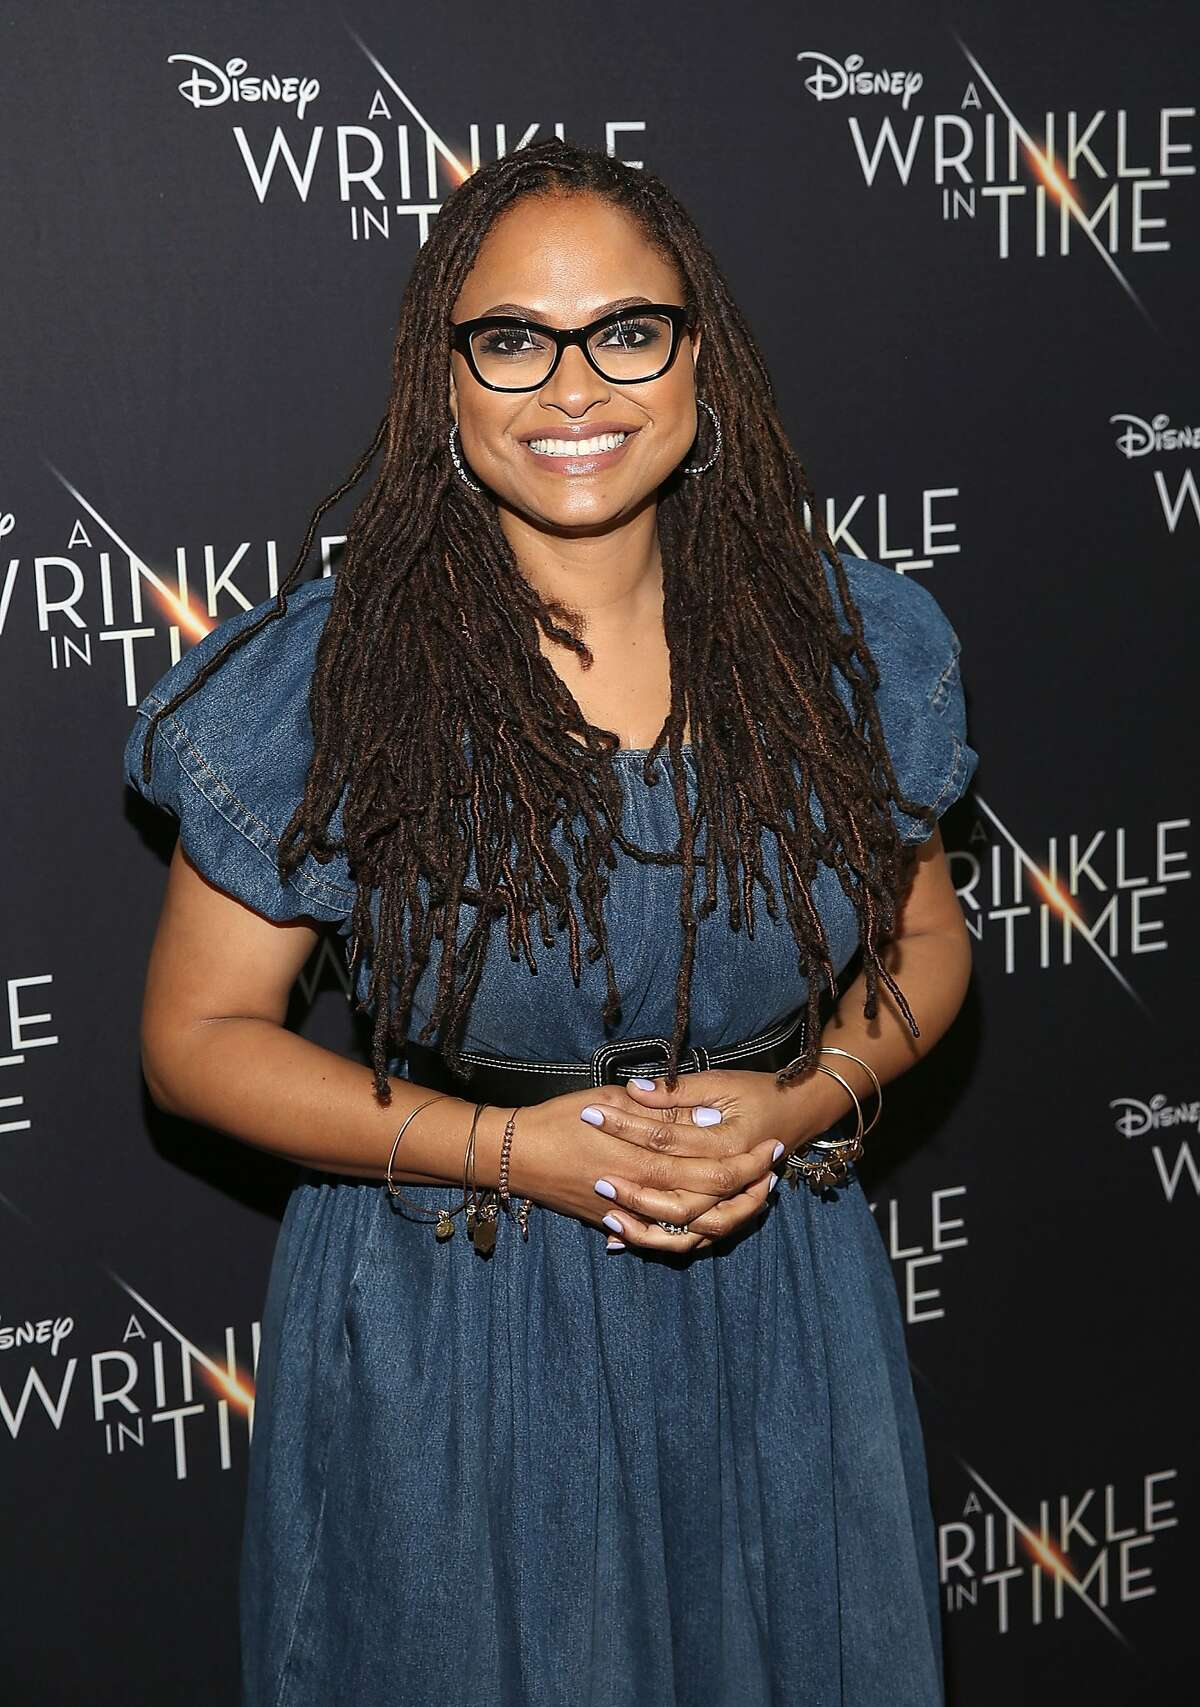 """COMPTON, CA - MARCH 02: Director Ava DuVernay attends a special advance private screeing of """"A Wrinkle in Time"""" attended by students from various middle schools around the city of Compton on March 2, 2018 in Compton, California. (Photo by Jesse Grant/Getty Images for Disney)"""